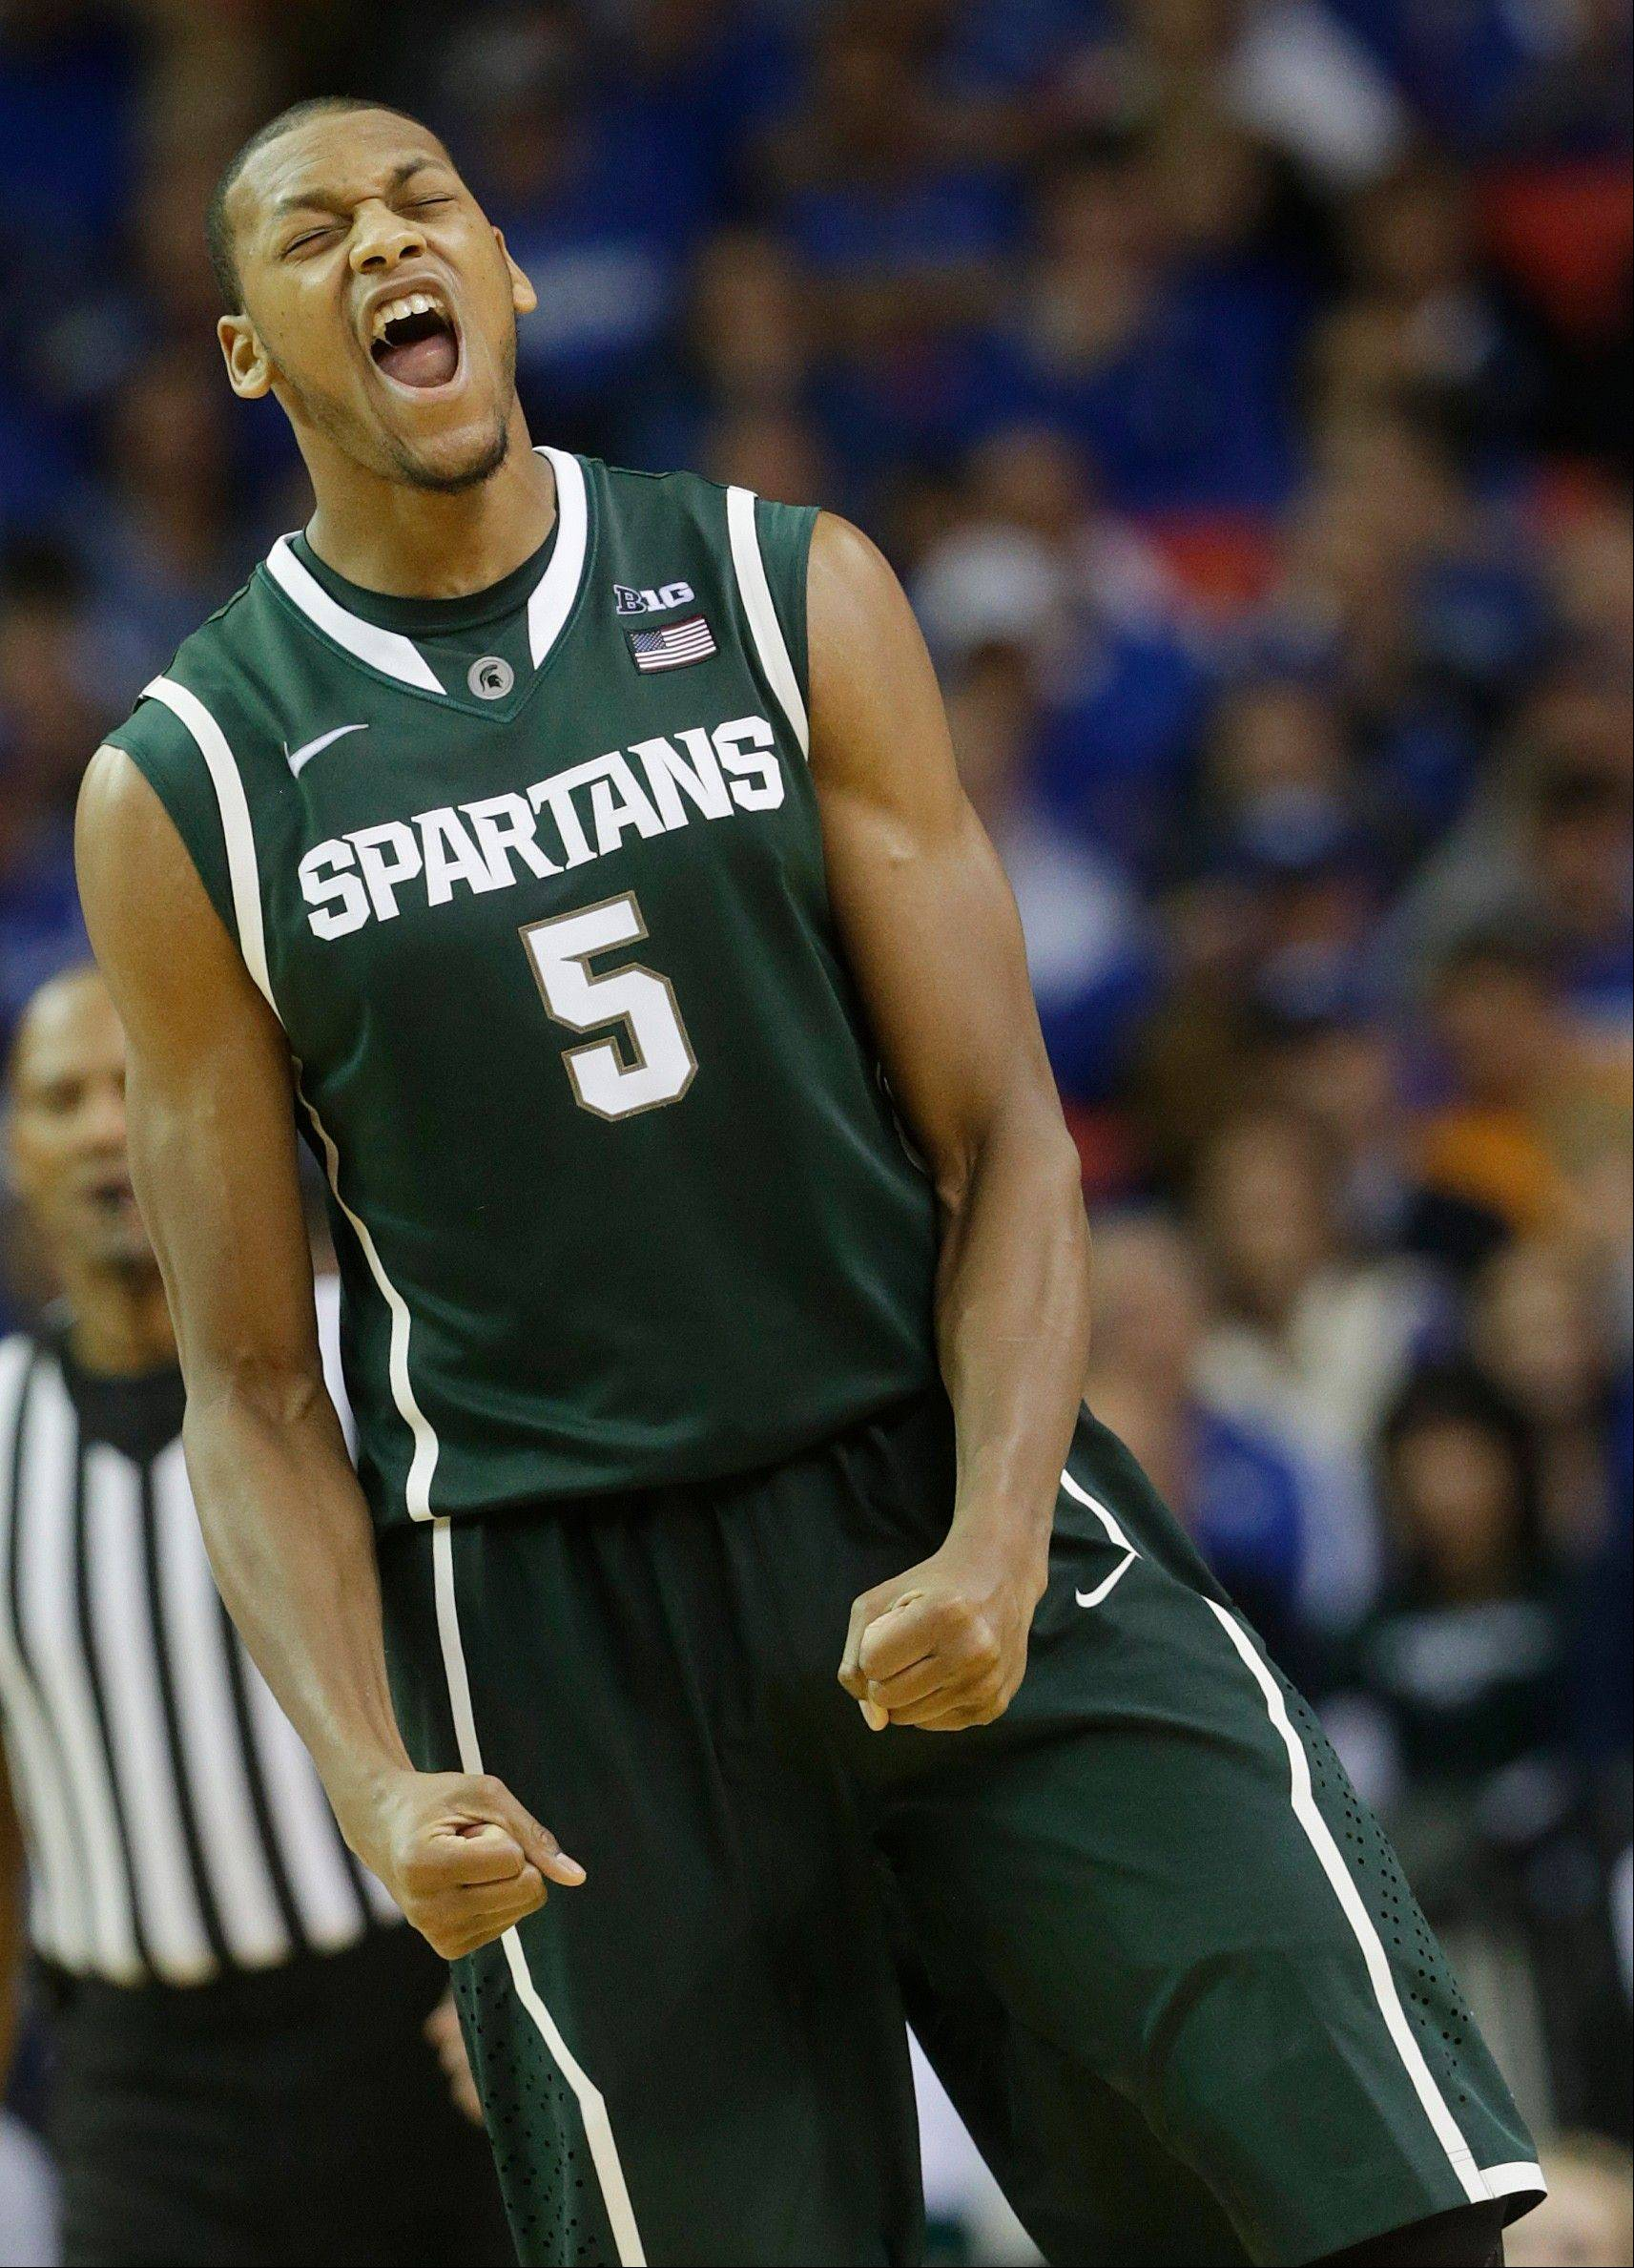 Michigan State center Adreian Payne reacts Tuesday during the second half of the Spartans game against Kansas at the Georgia Dome in Atlanta. Michigan State beat Kansas 67-64.